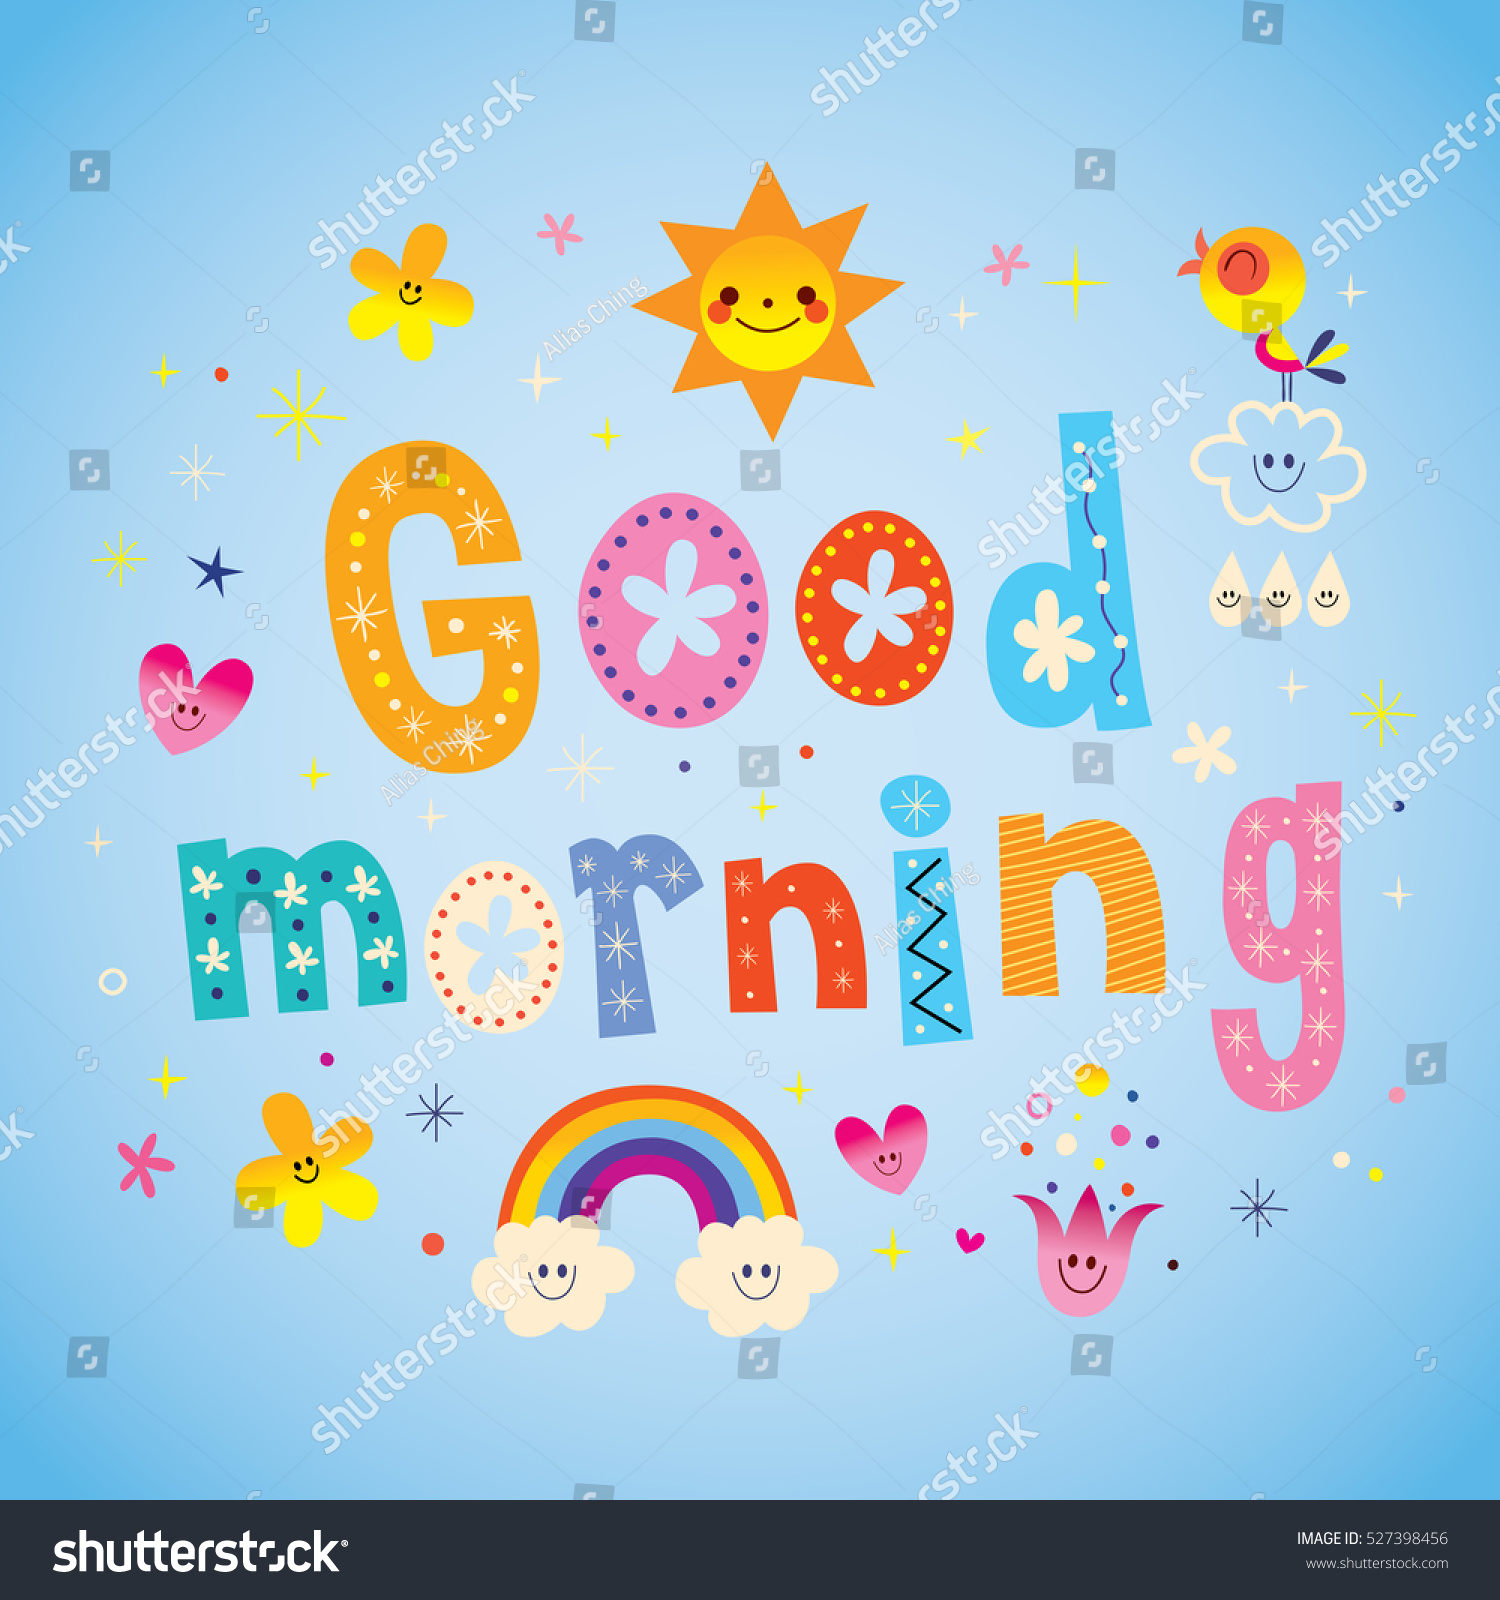 Goodmorning Unique Images: Good Morning Unique Lettering Design Cute Stock Vector